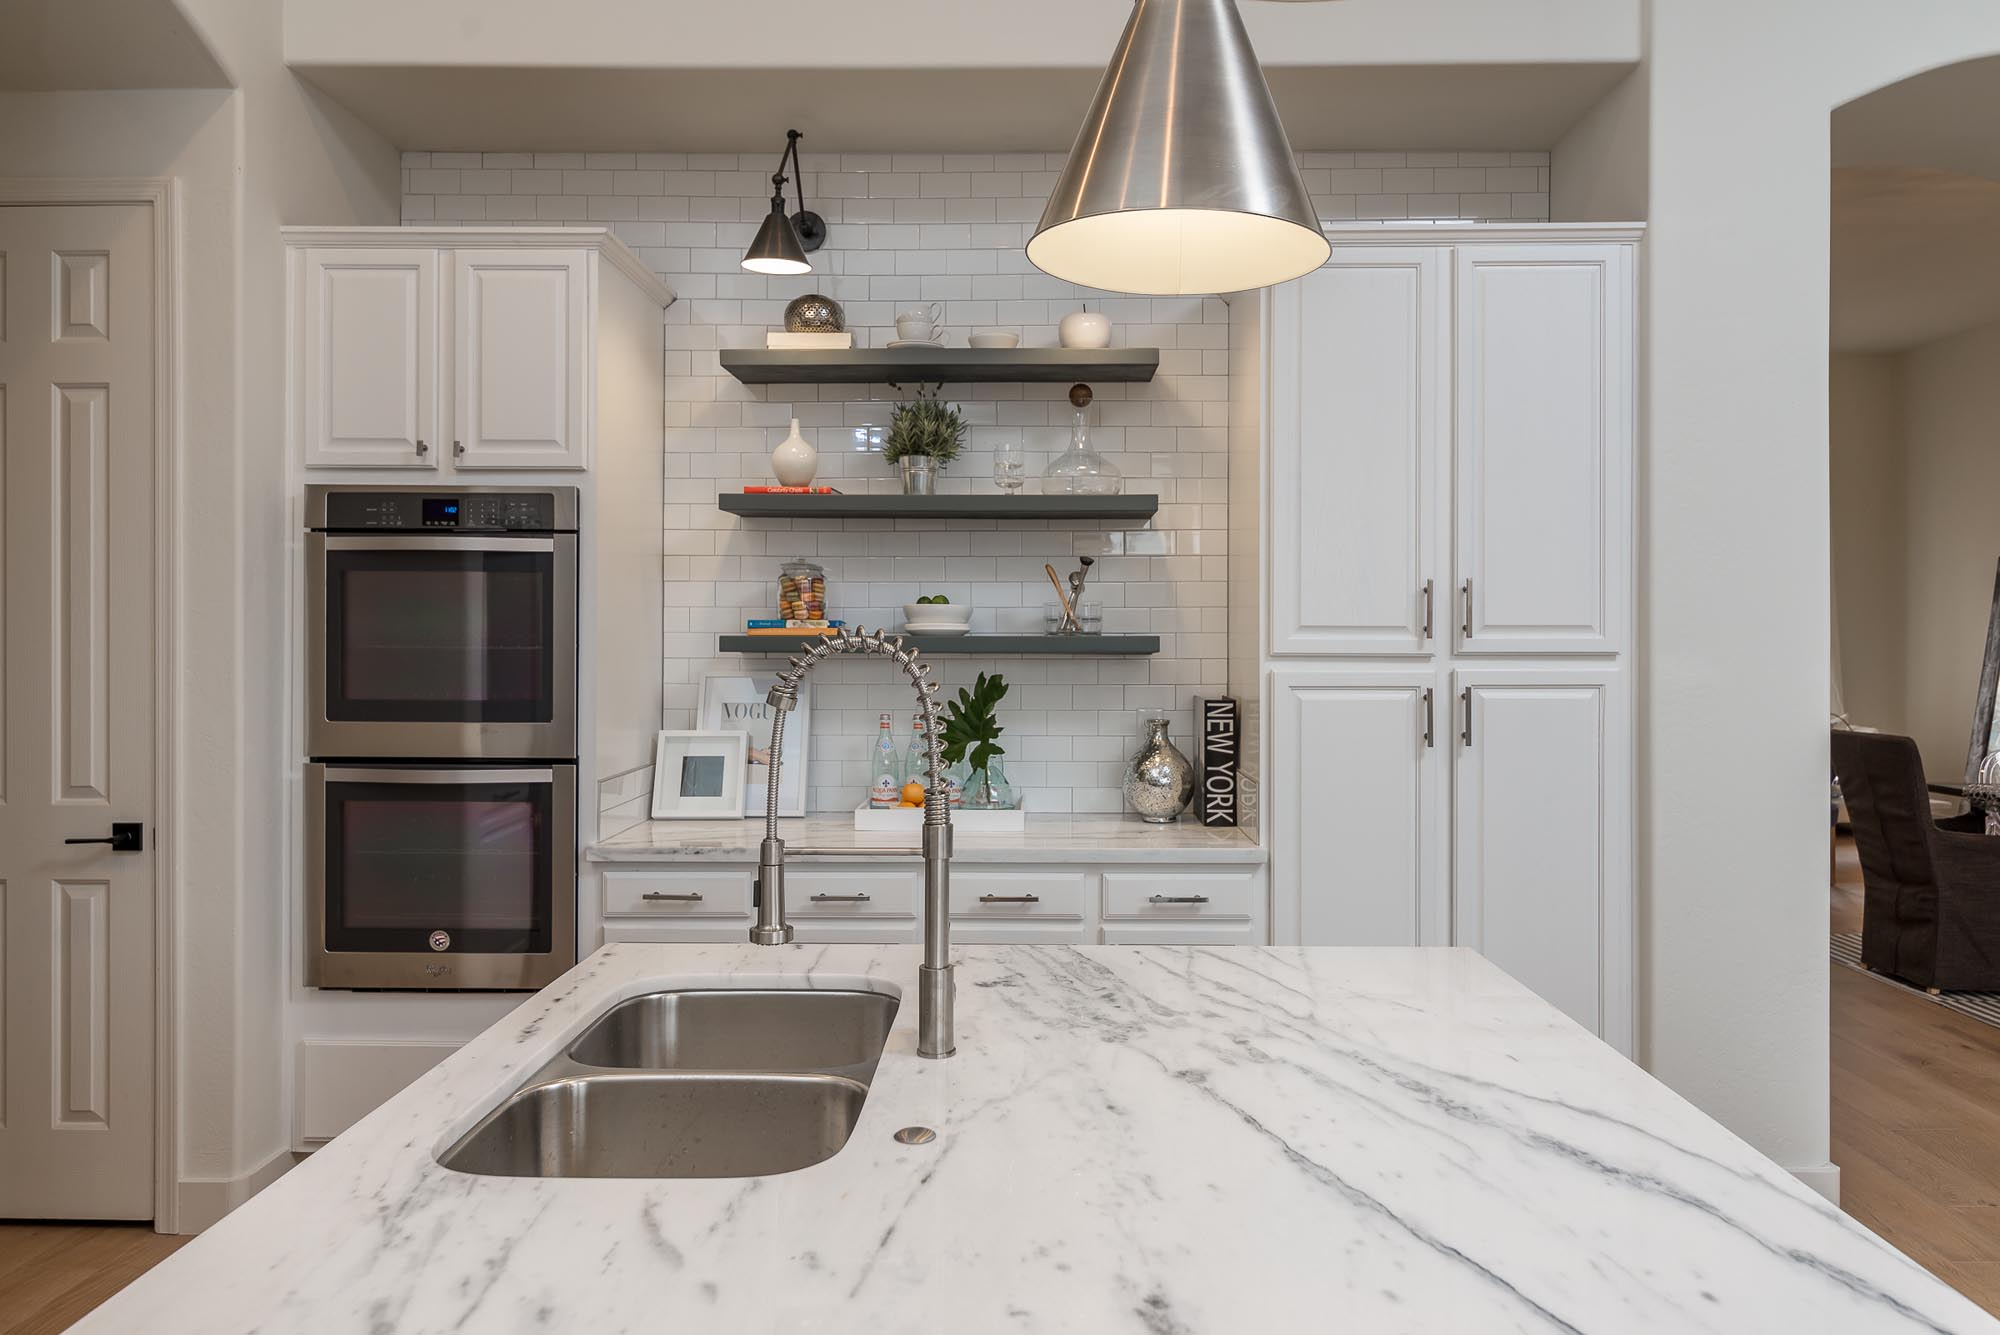 Kitchen granite countertop island with stylish faucet